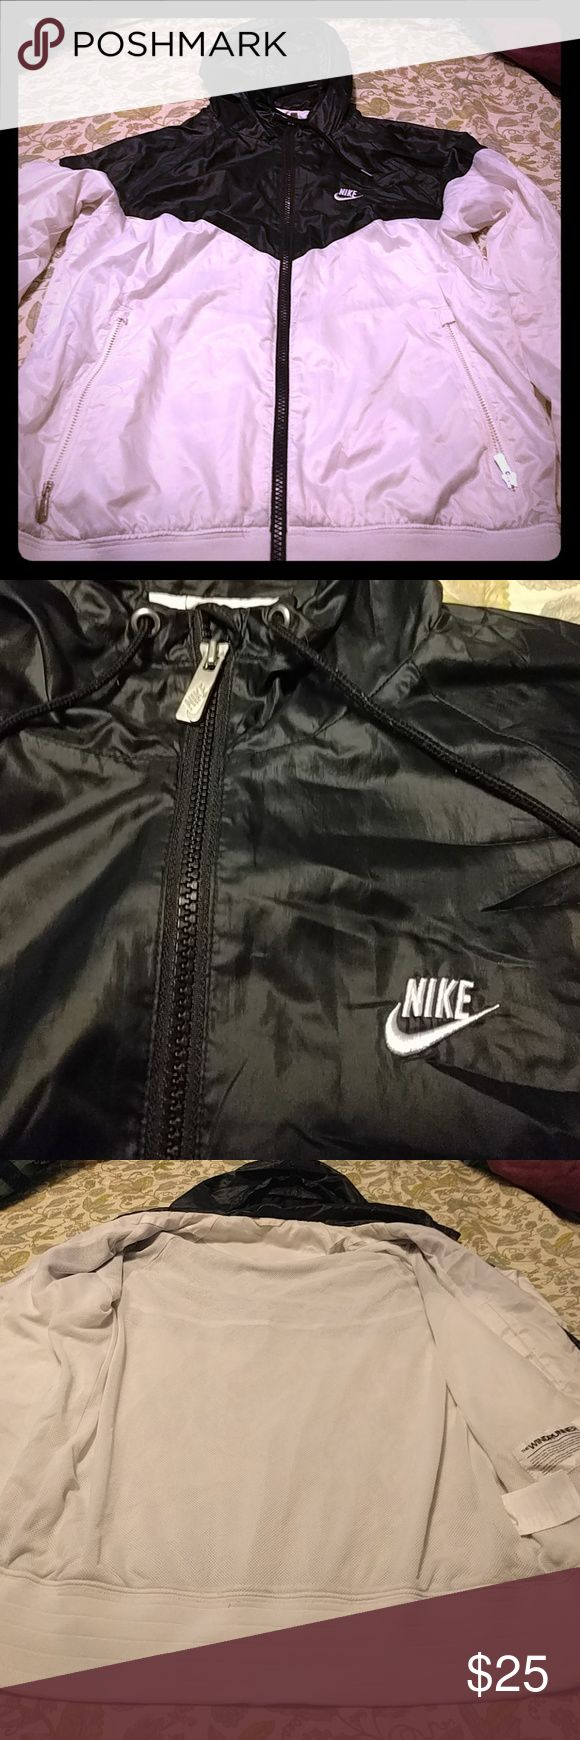 Nike windrunner jacket Black and White Nike windrunner. Good used condition, slight discoloration near wrist as seen in last picture. Looks like it would come out with proper cleaning. Hardly noticable as it is. Nike Jackets & Coats